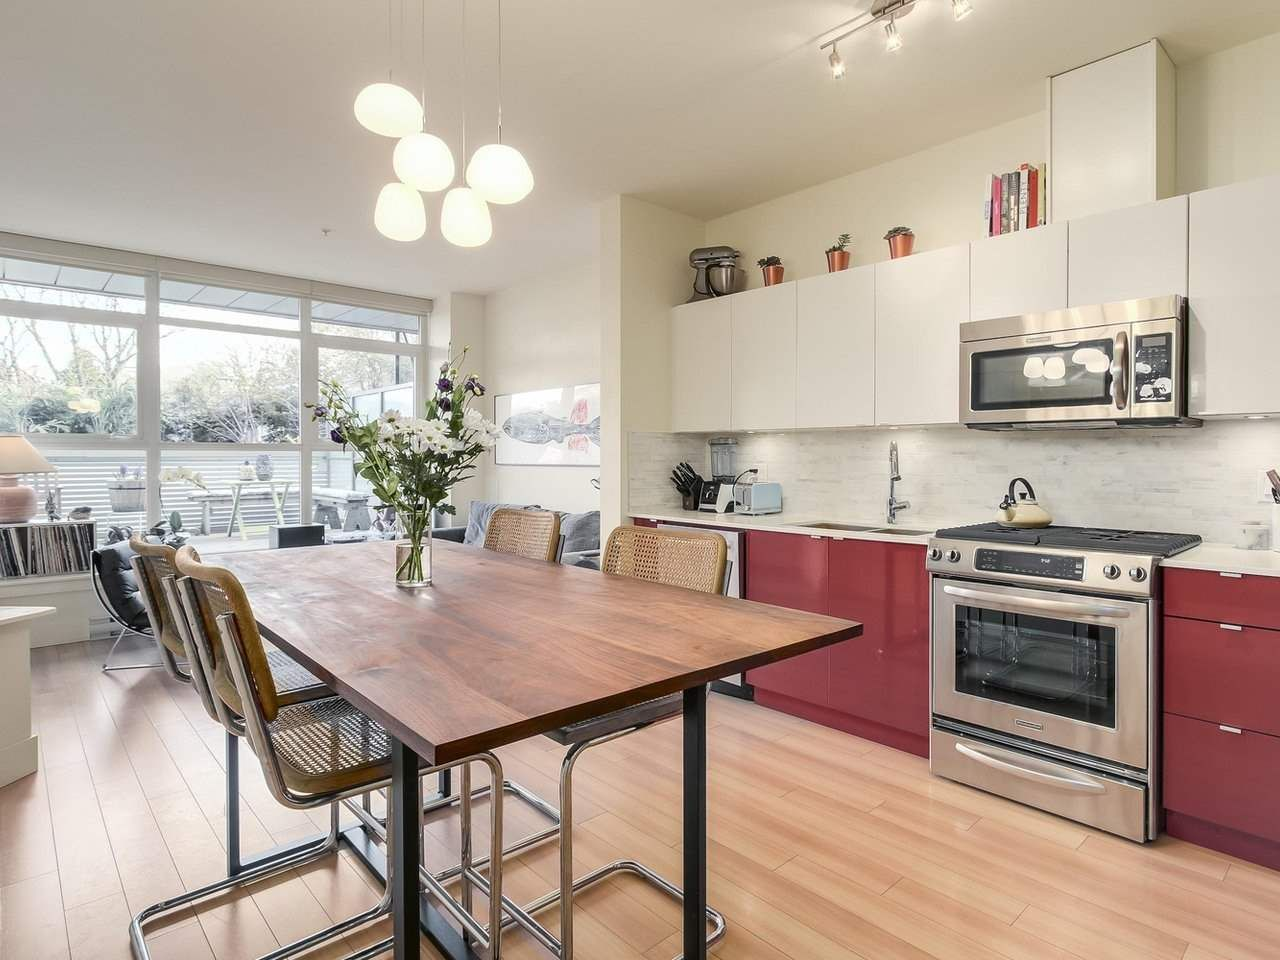 """Main Photo: 209 2250 COMMERCIAL Drive in Vancouver: Grandview VE Condo for sale in """"THE MARQUEE"""" (Vancouver East)  : MLS®# R2253784"""